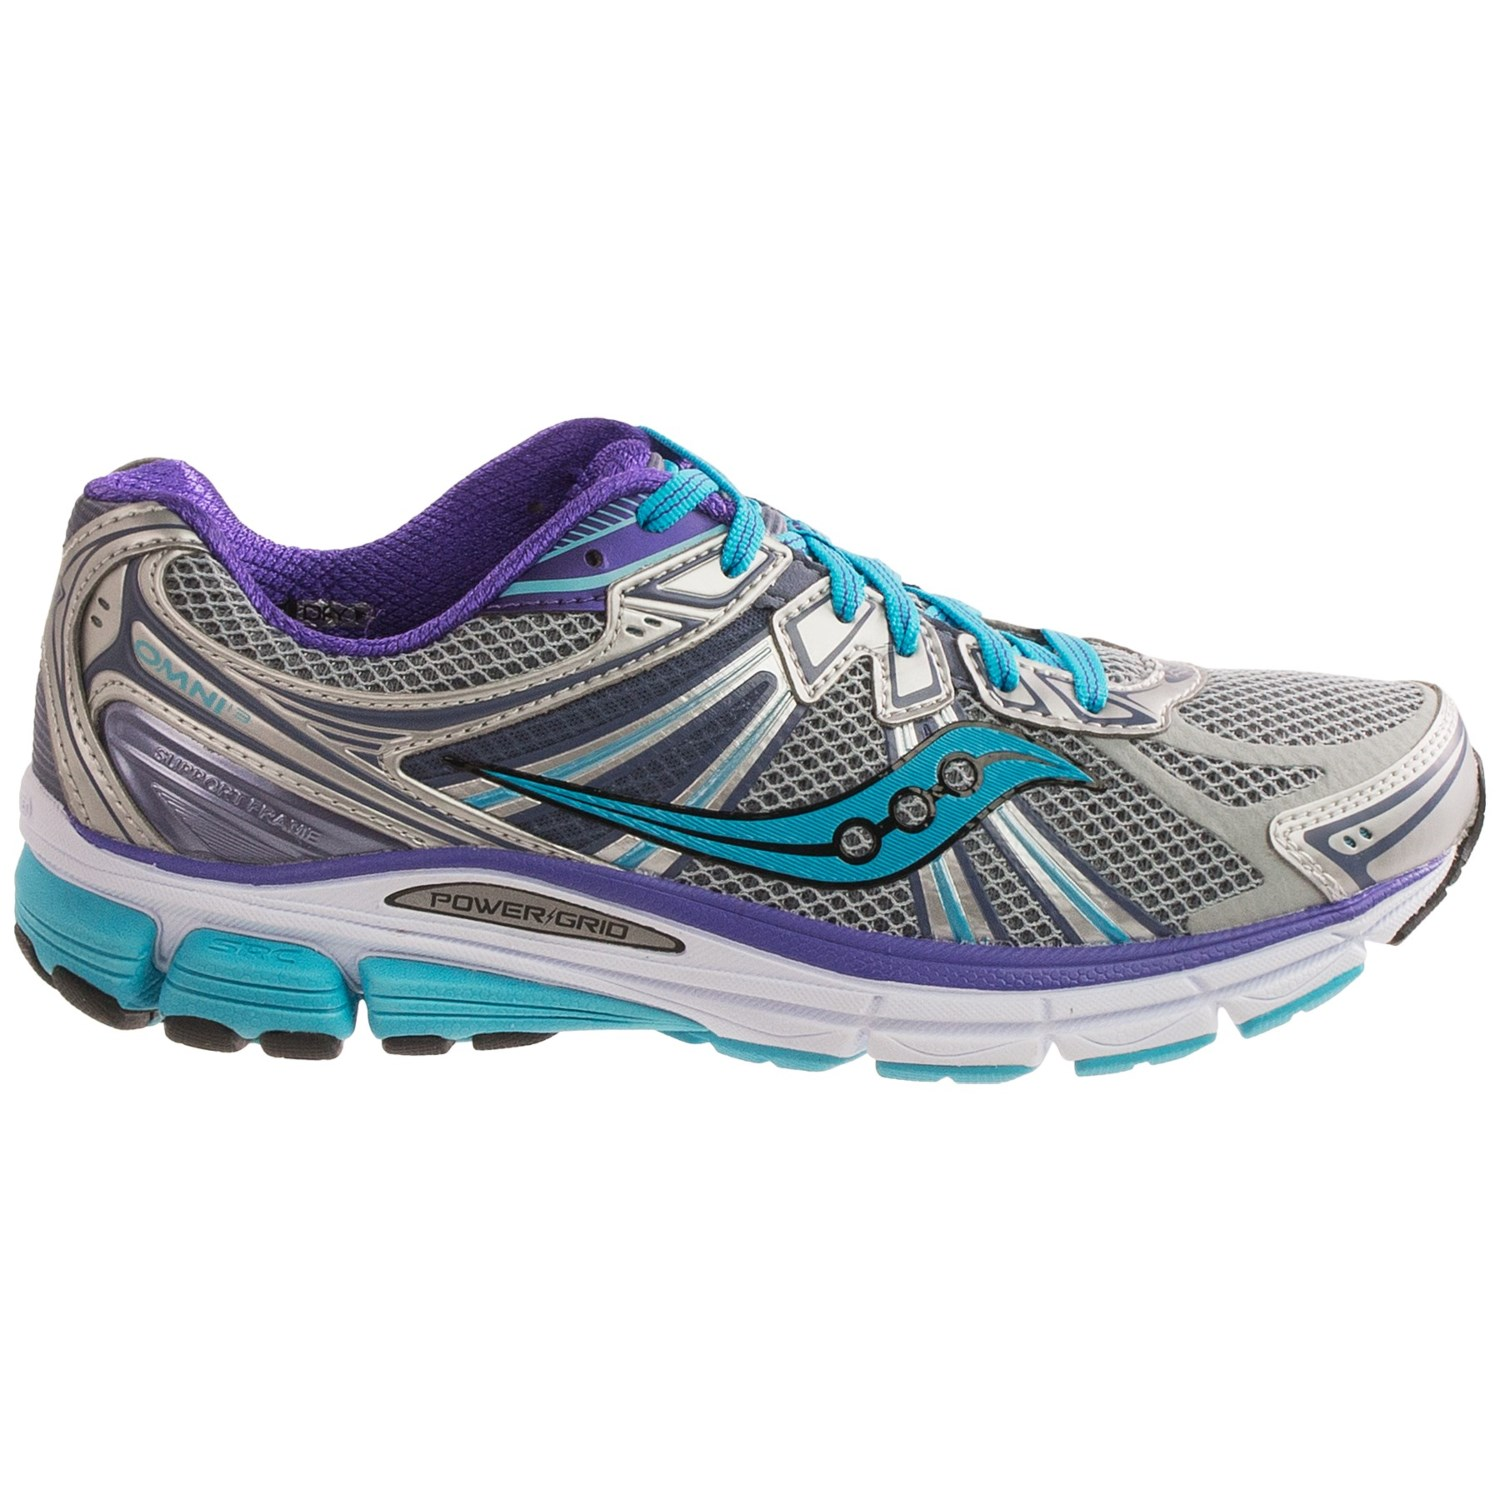 saucony 13 running shoes for 8595k save 38